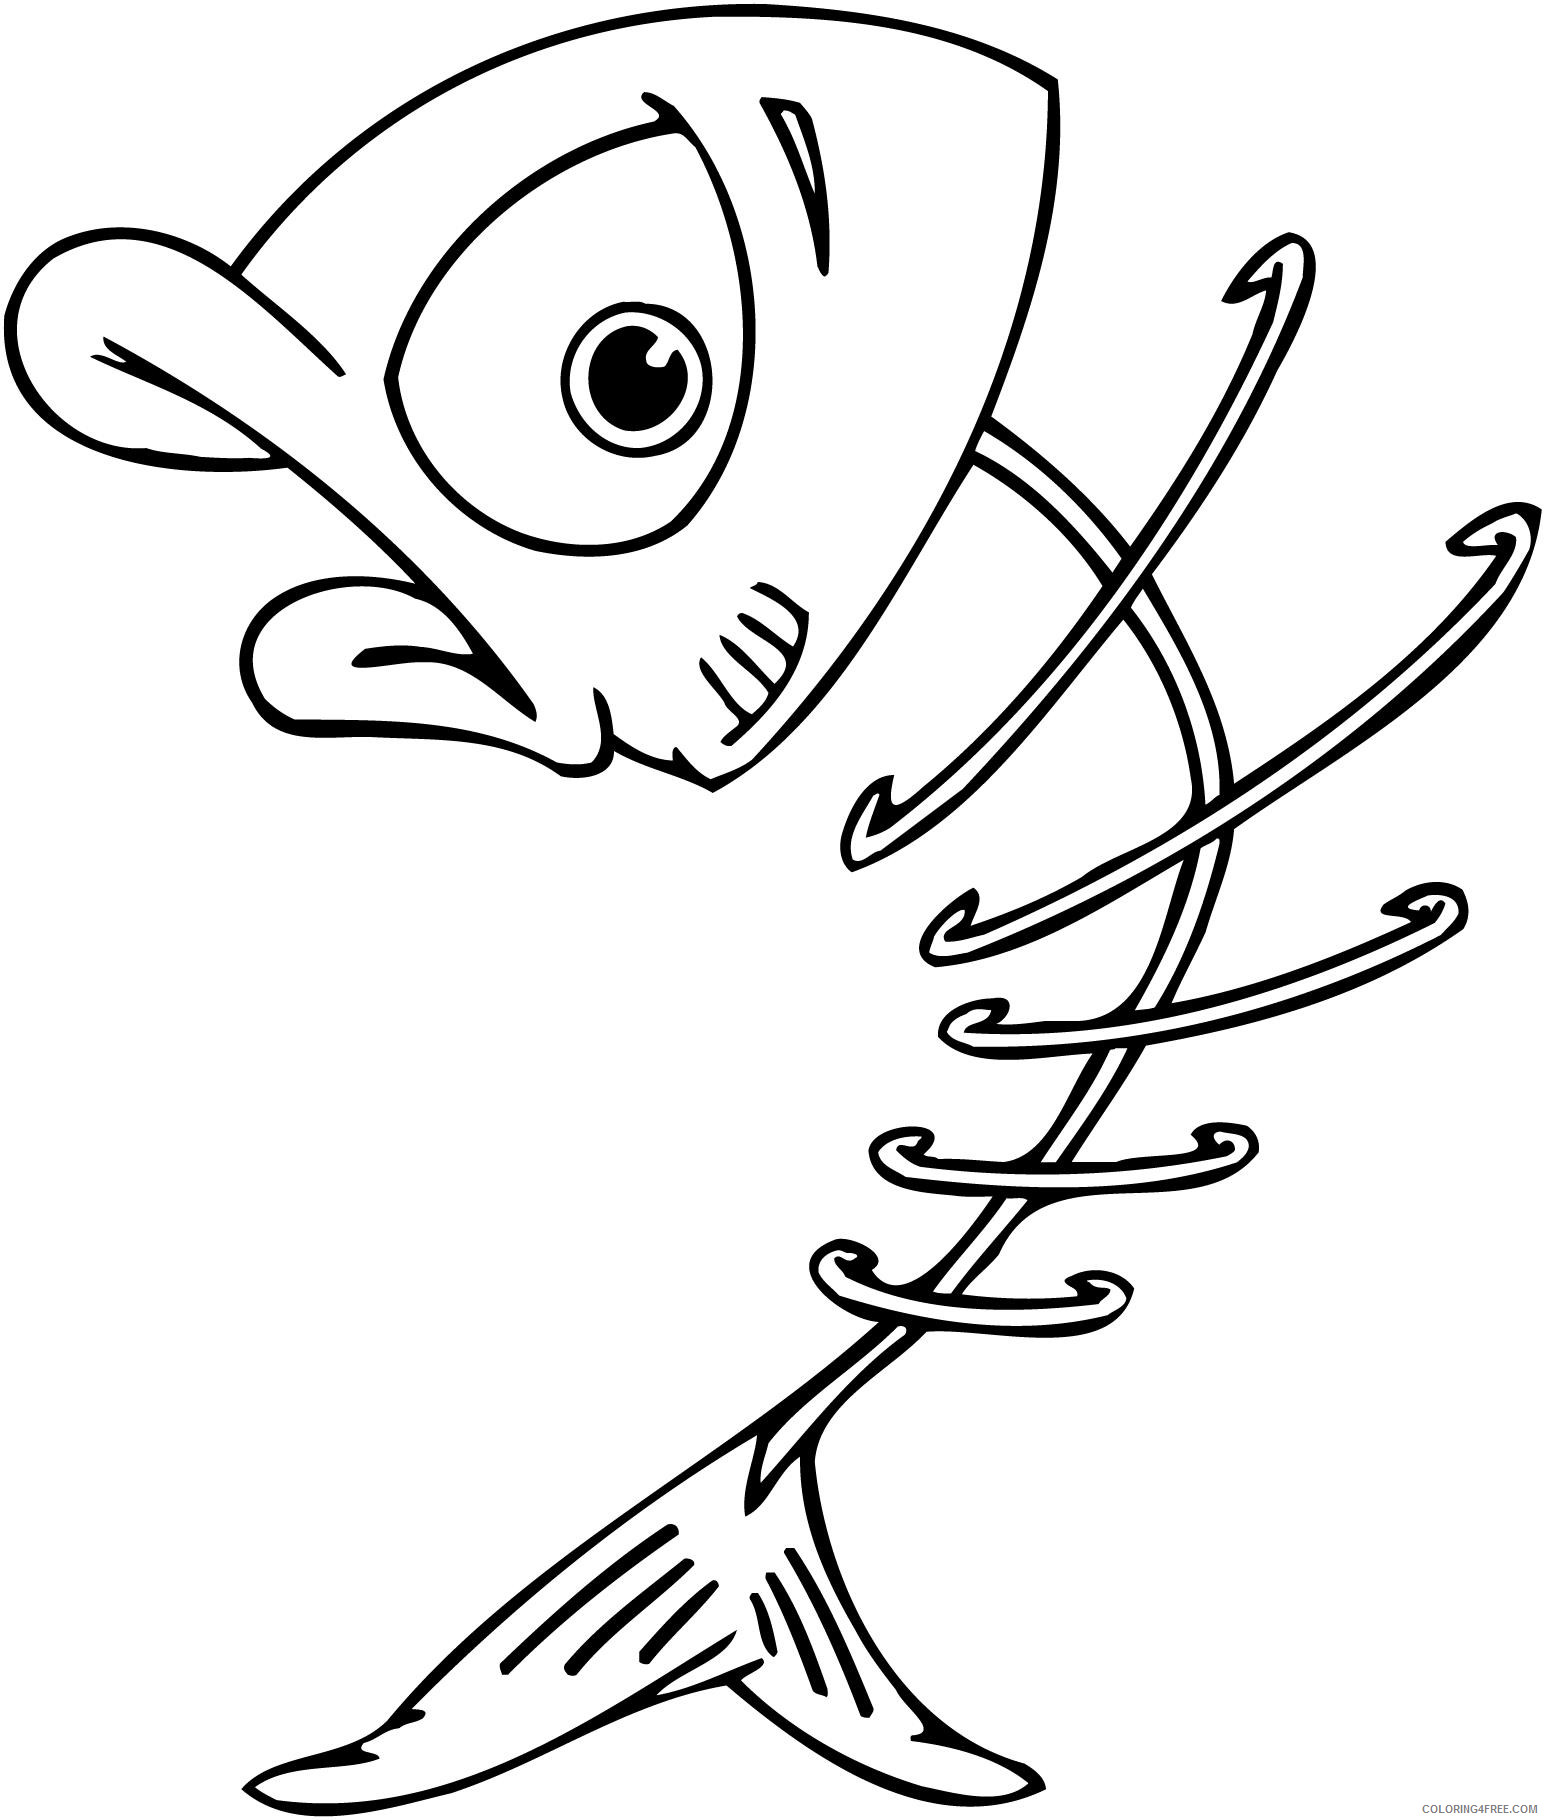 Fish Skeleton Coloring Pages fish skeleton clipart Printable Coloring4free